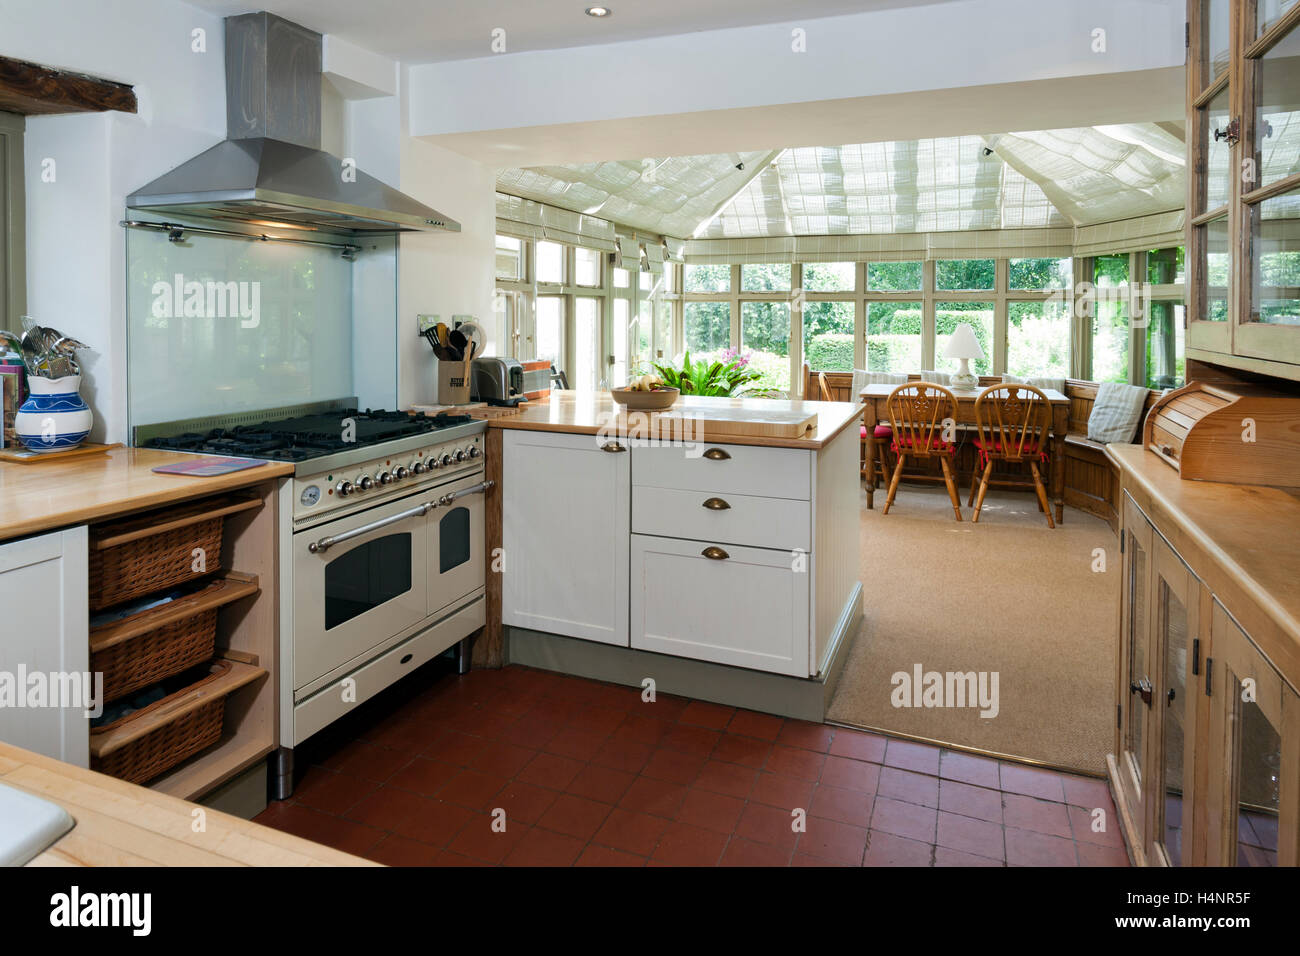 a small kitchen with a large conservatory dining room beyond stock image - Kitchen Conservatory